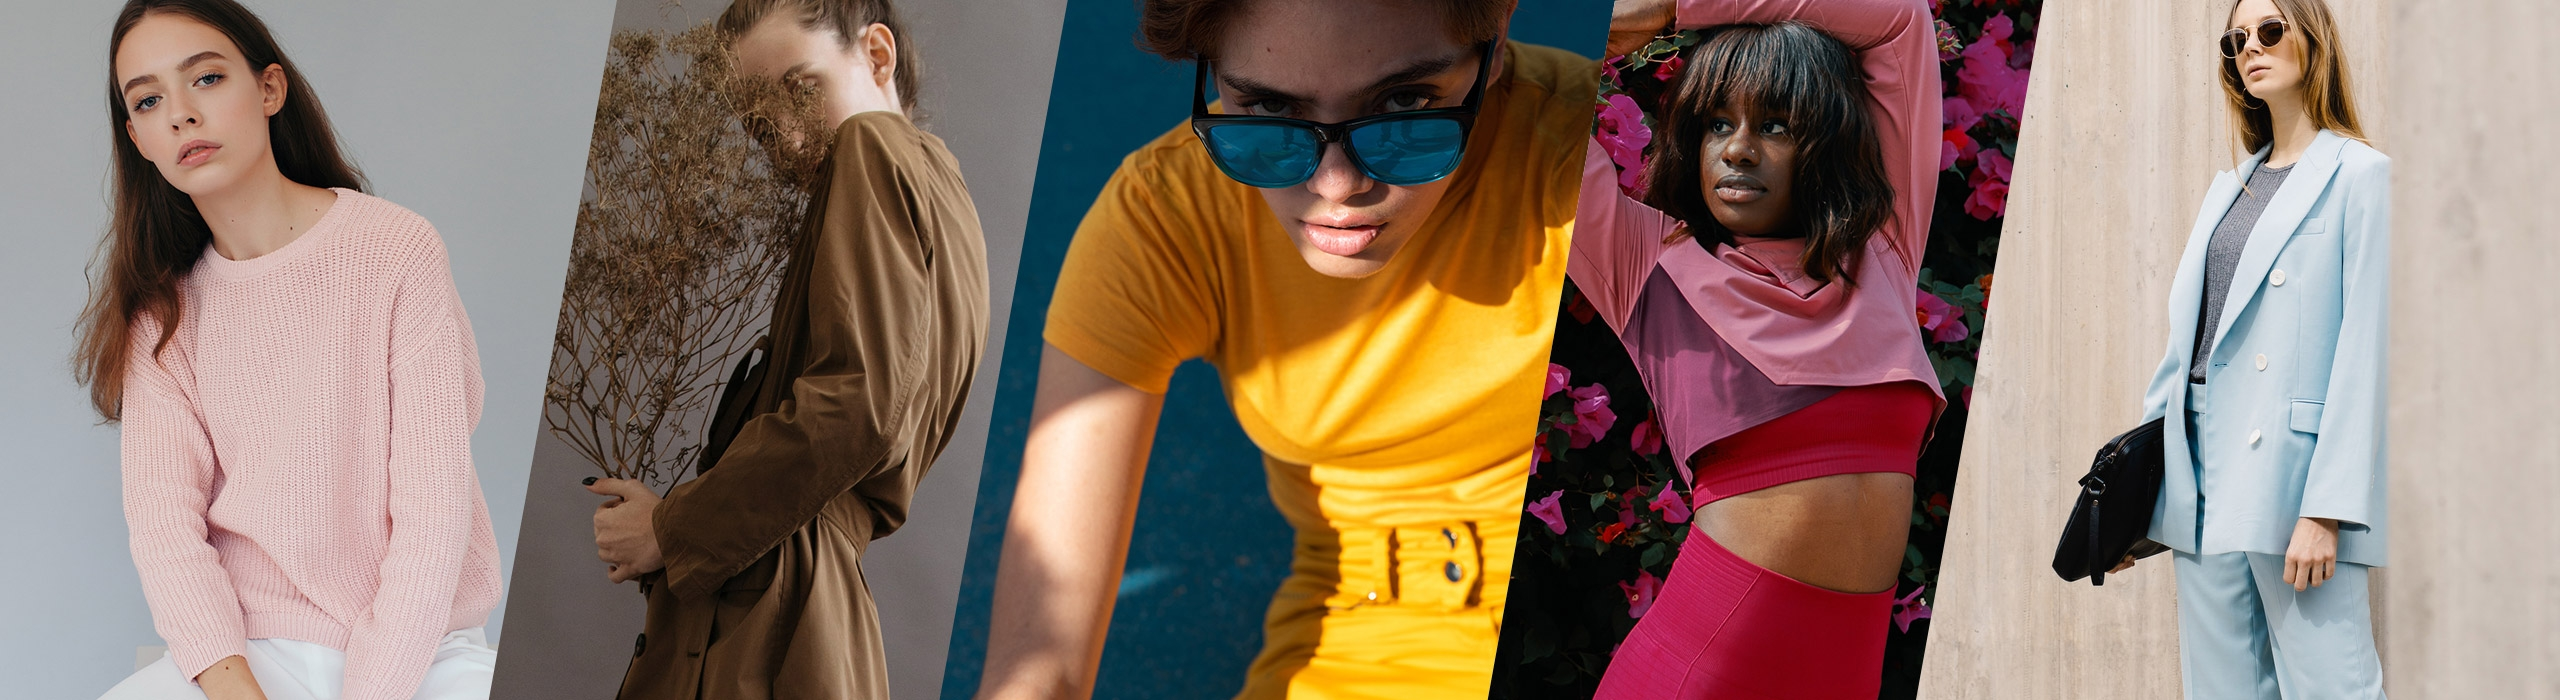 Pantone Fashion Color Trend Report New York Spring/Summer 2020